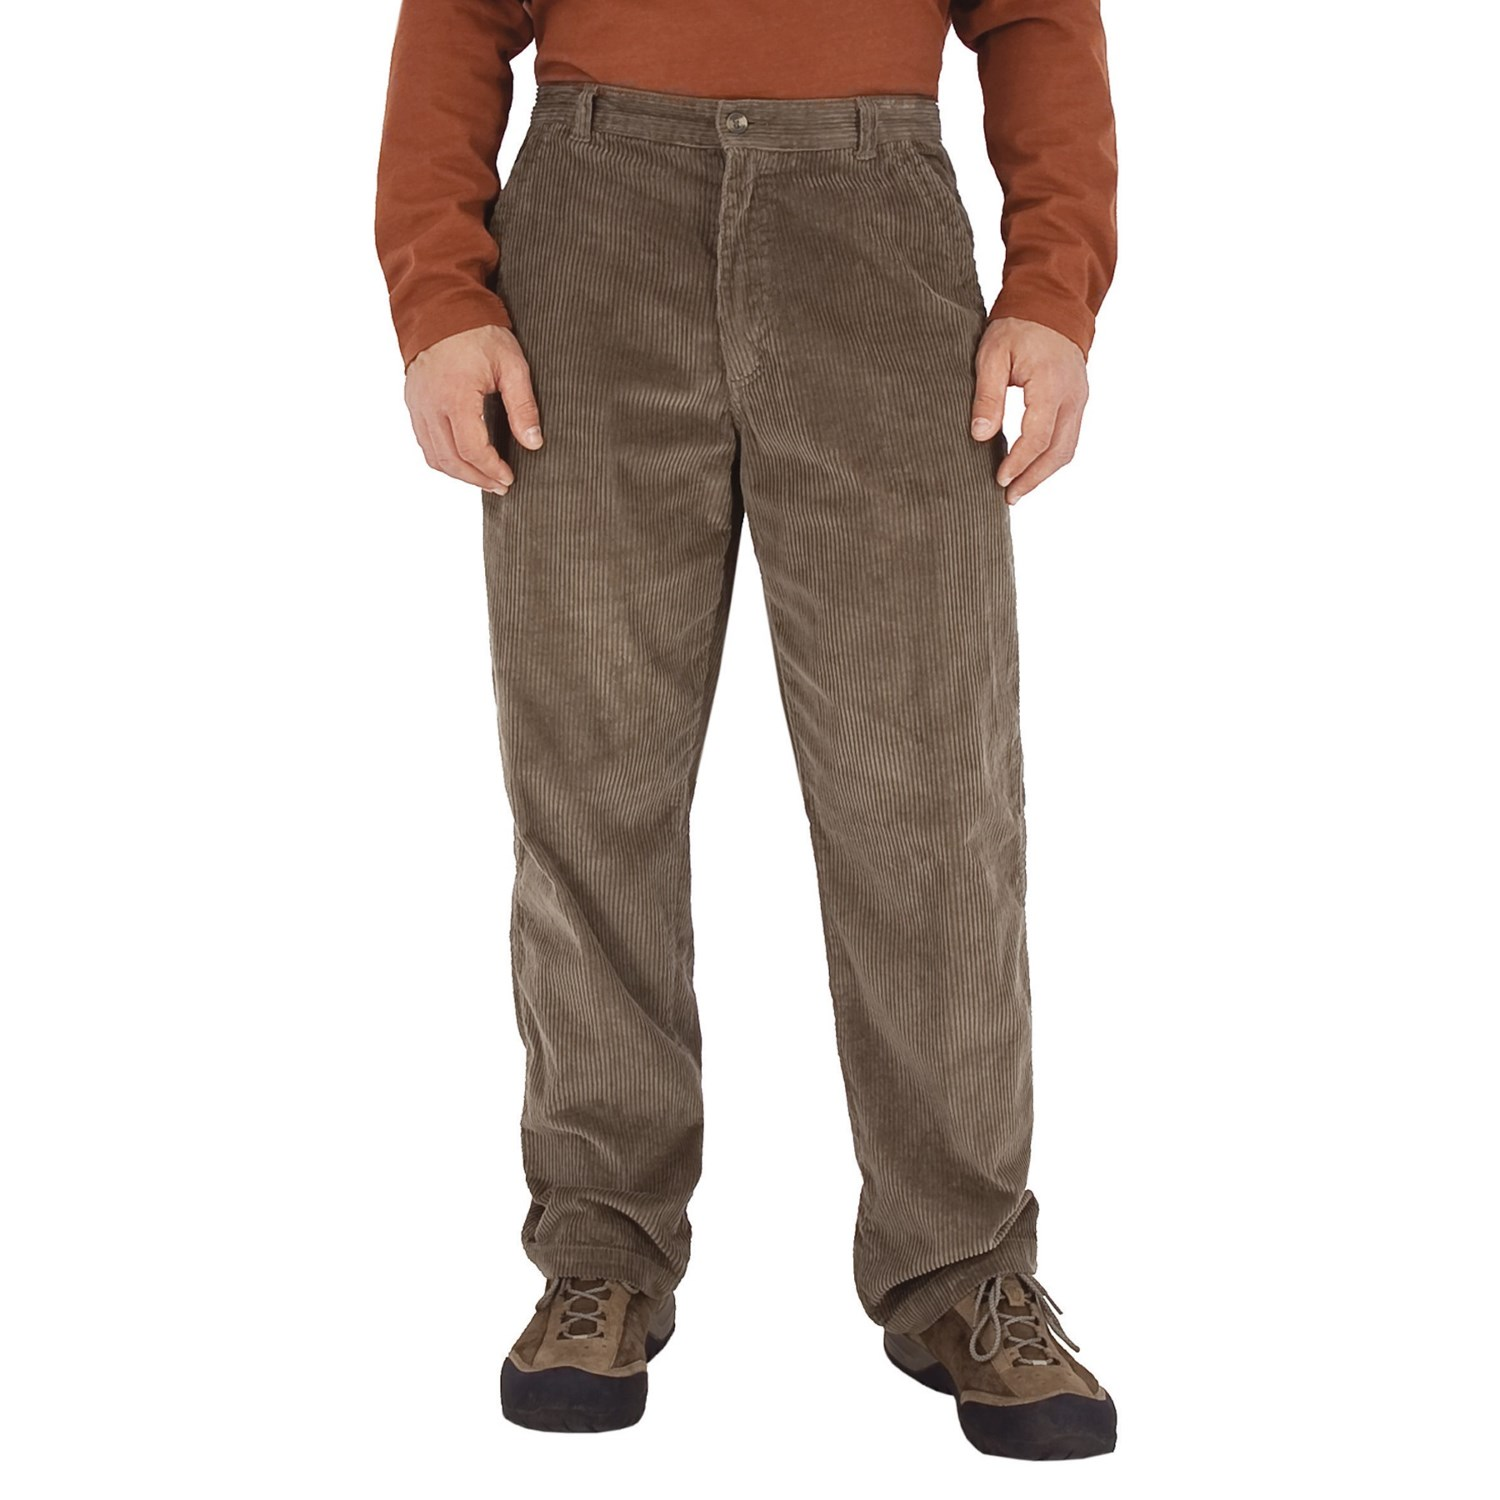 Shop eBay for great deals on Men's Corduroy Pants. You'll find new or used products in Men's Corduroy Pants on eBay. Free shipping on selected items.